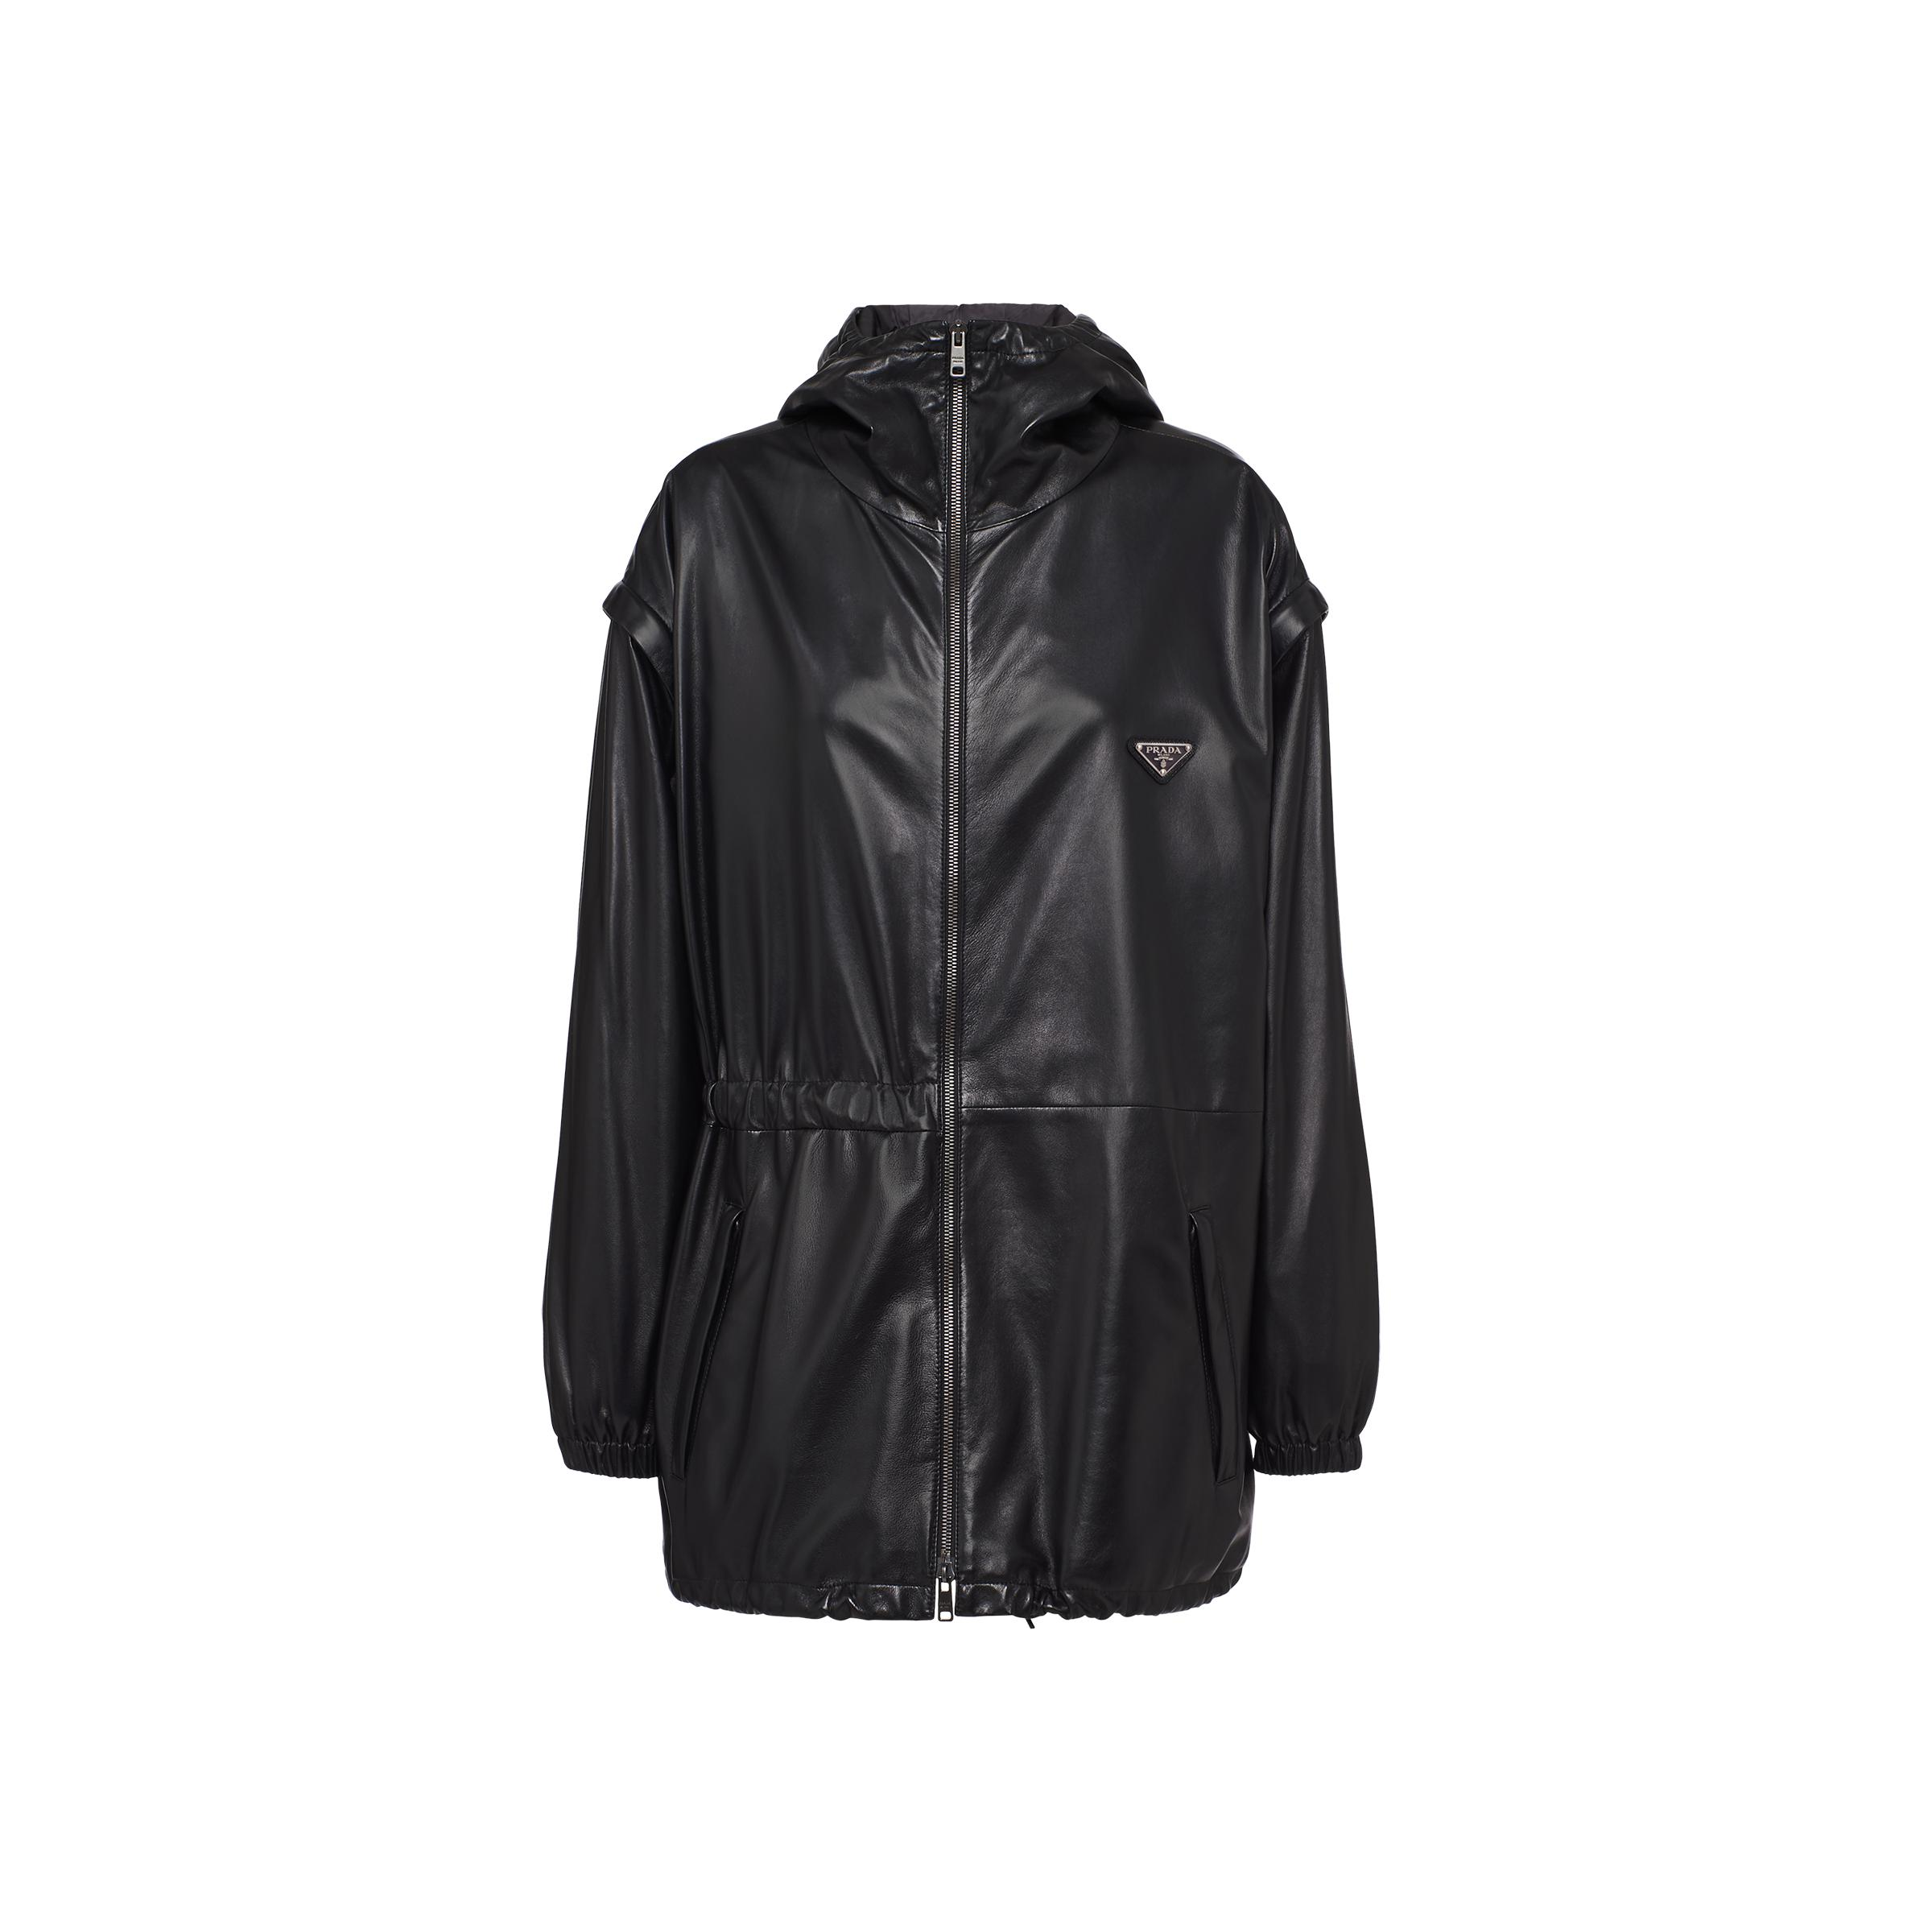 Nappa Leather Jacket With Detachable Sleeves Women Black